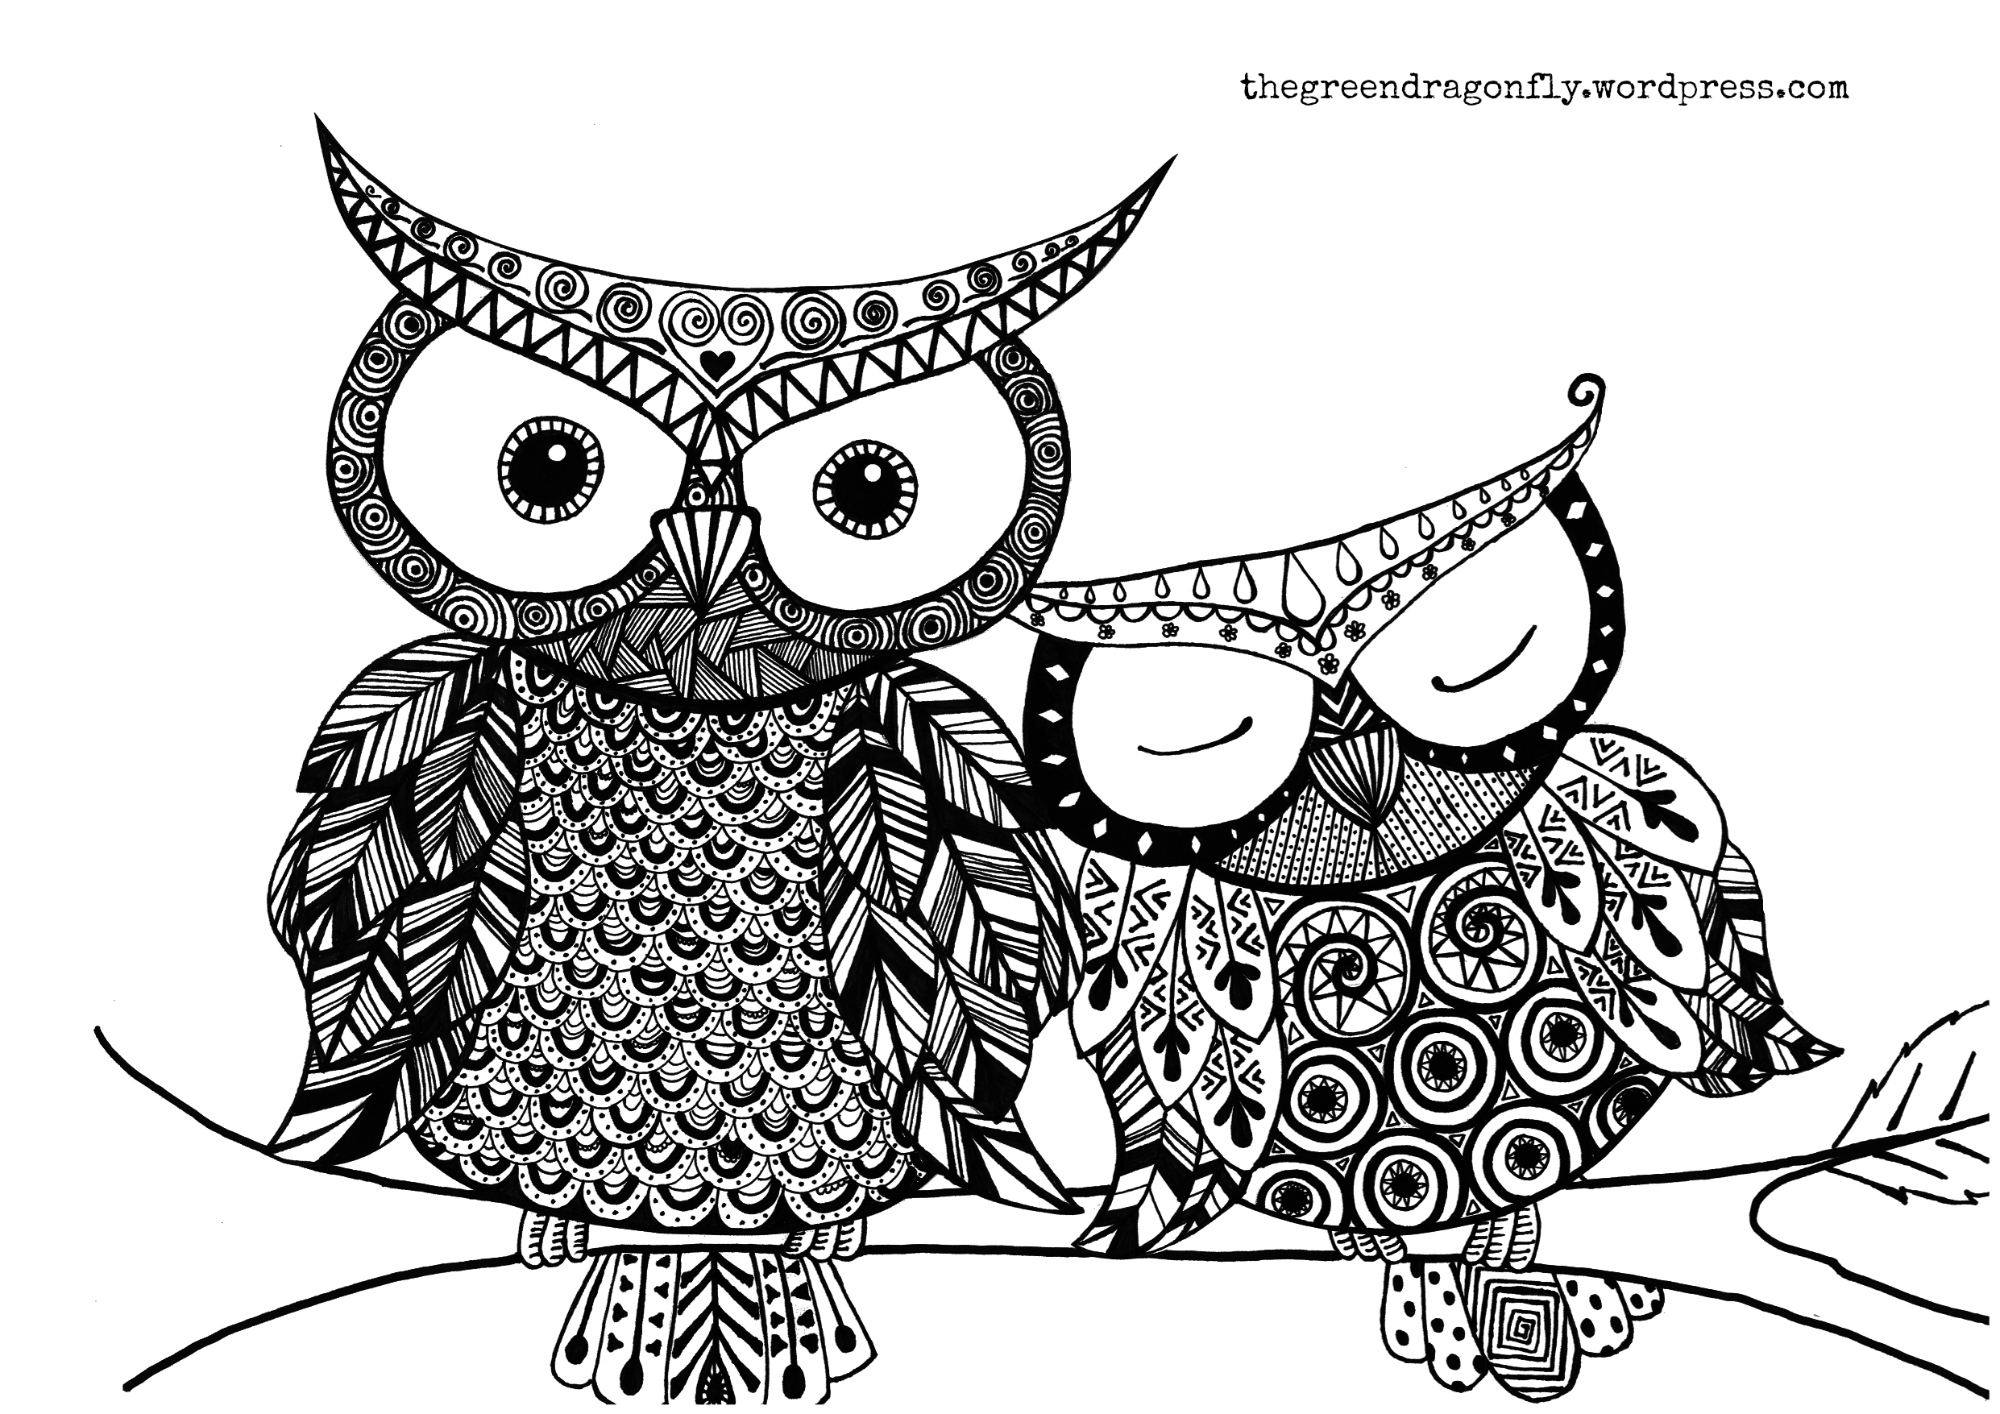 Owl_Coloring_Pages_Printable_05